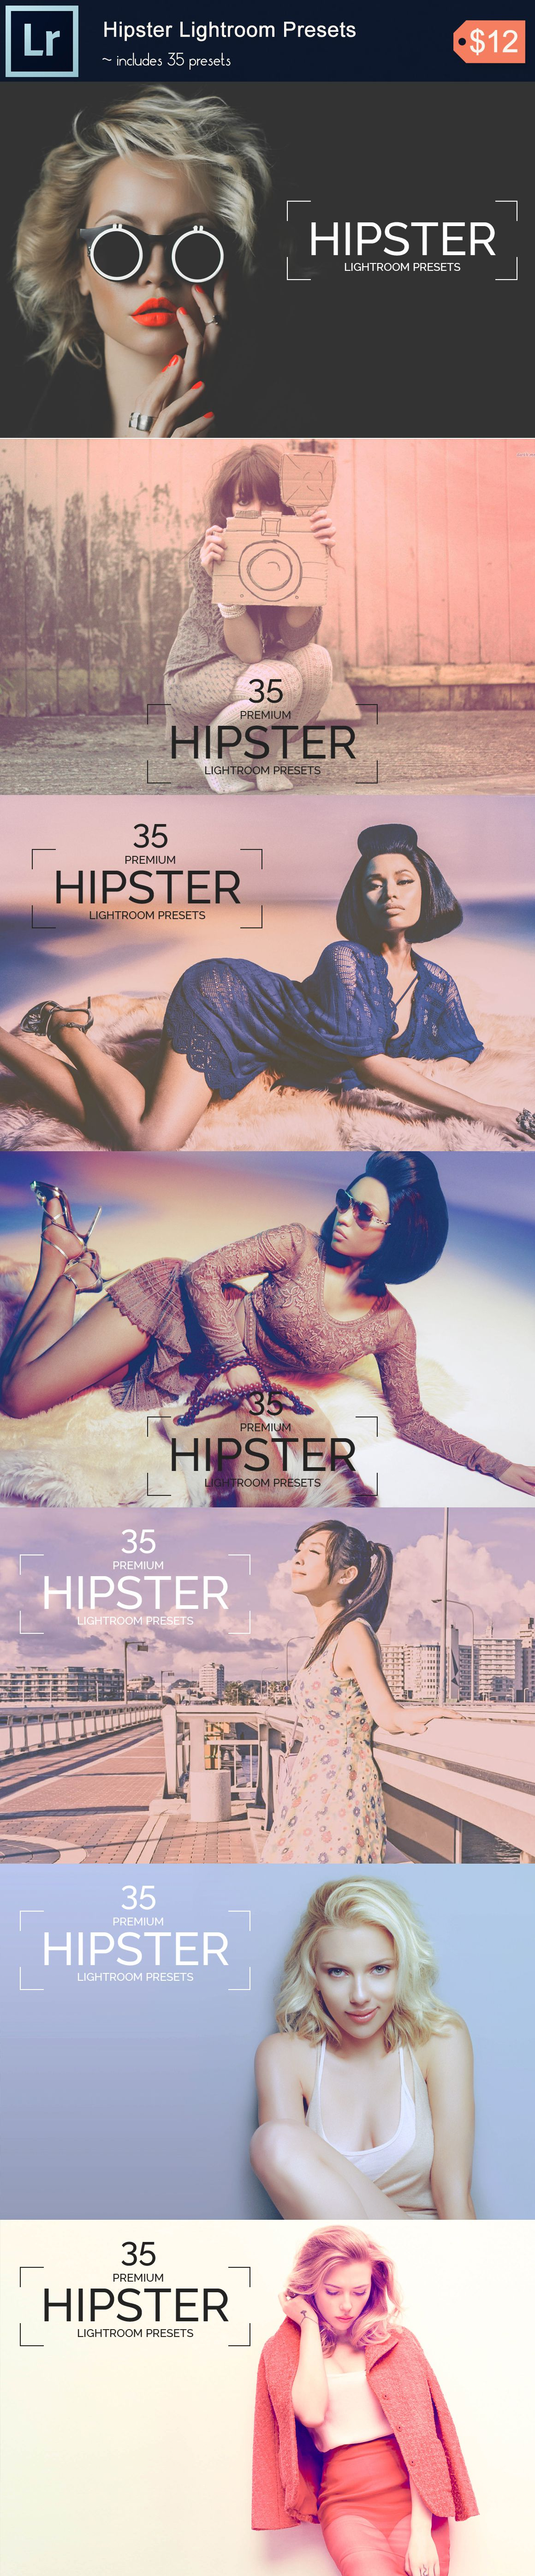 35 Hipster Lightroom Presets